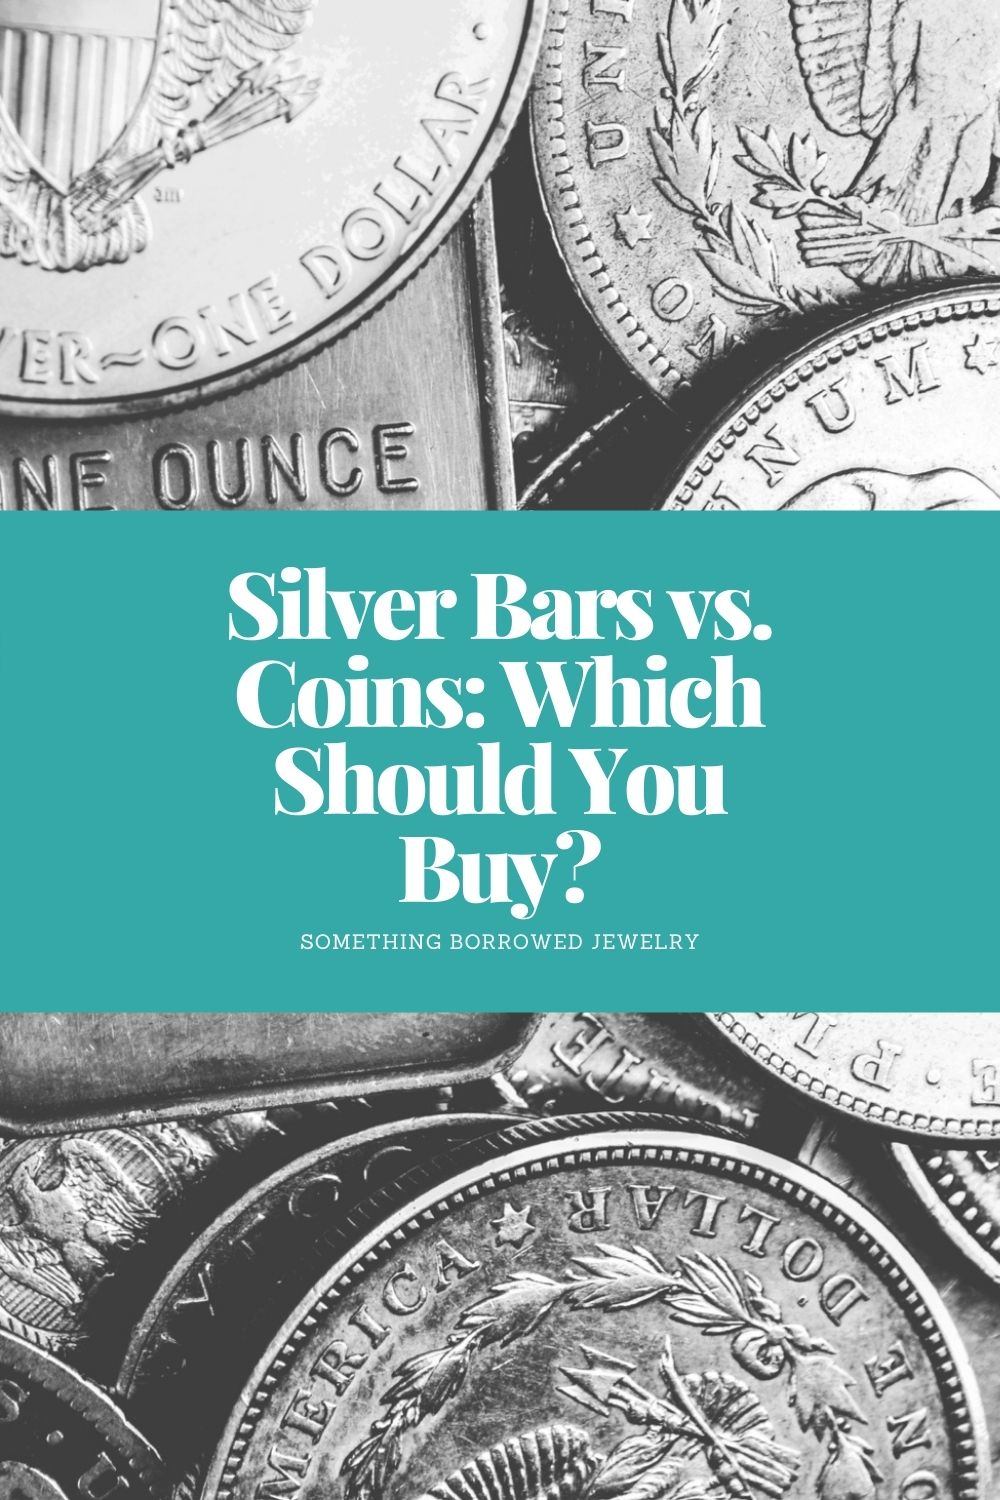 Silver Bars vs. Coins Which Should You Buy pin